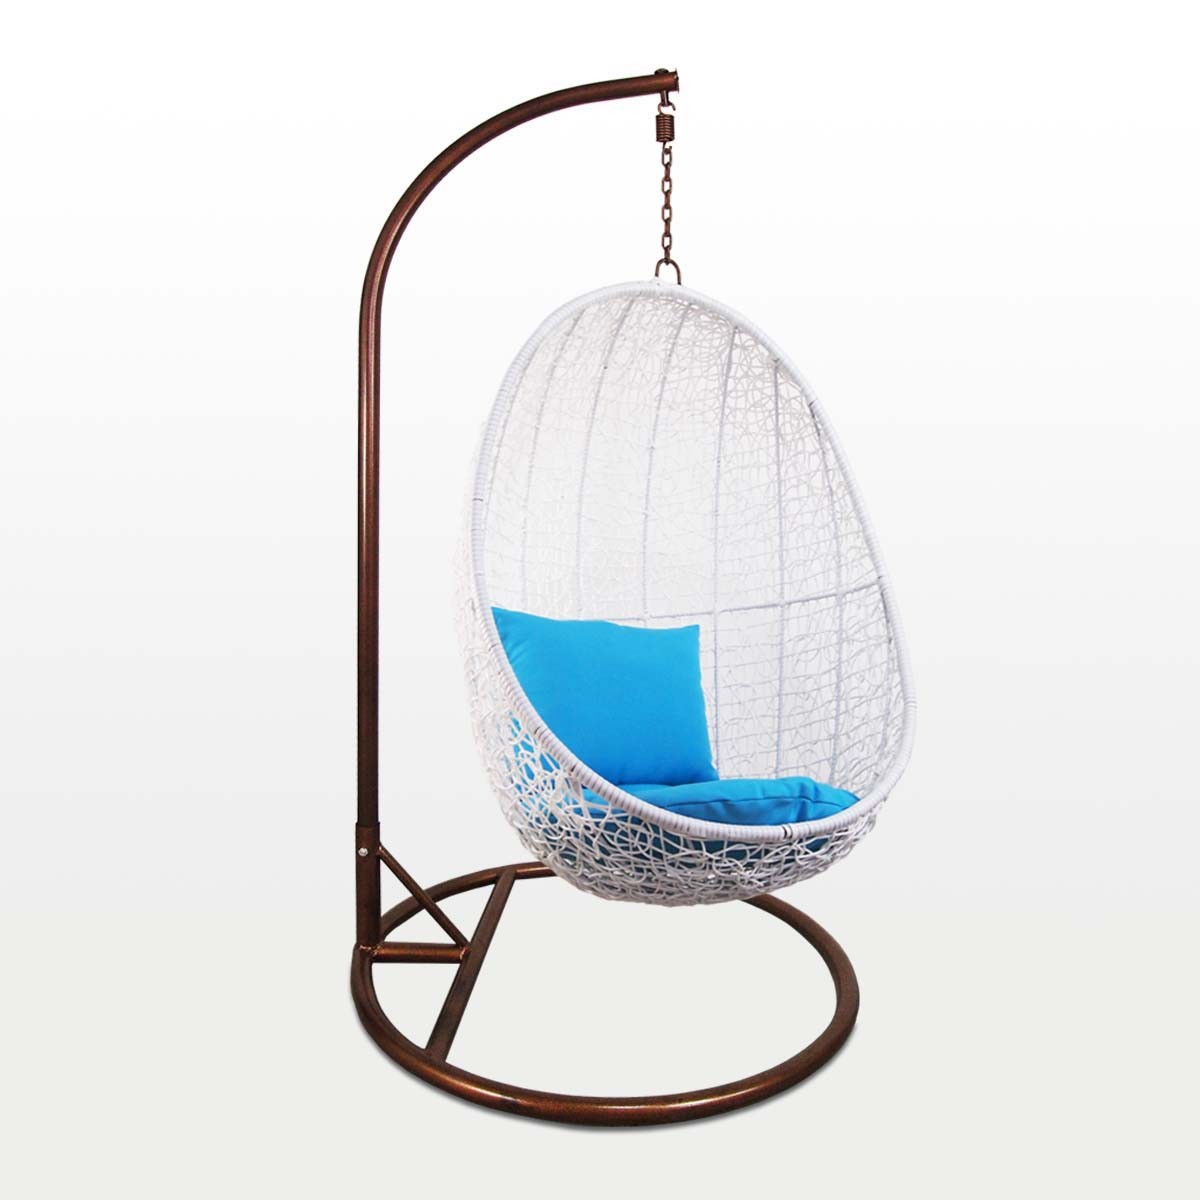 Swinging Chair White Cocoon Swing Chair Blue Cushion